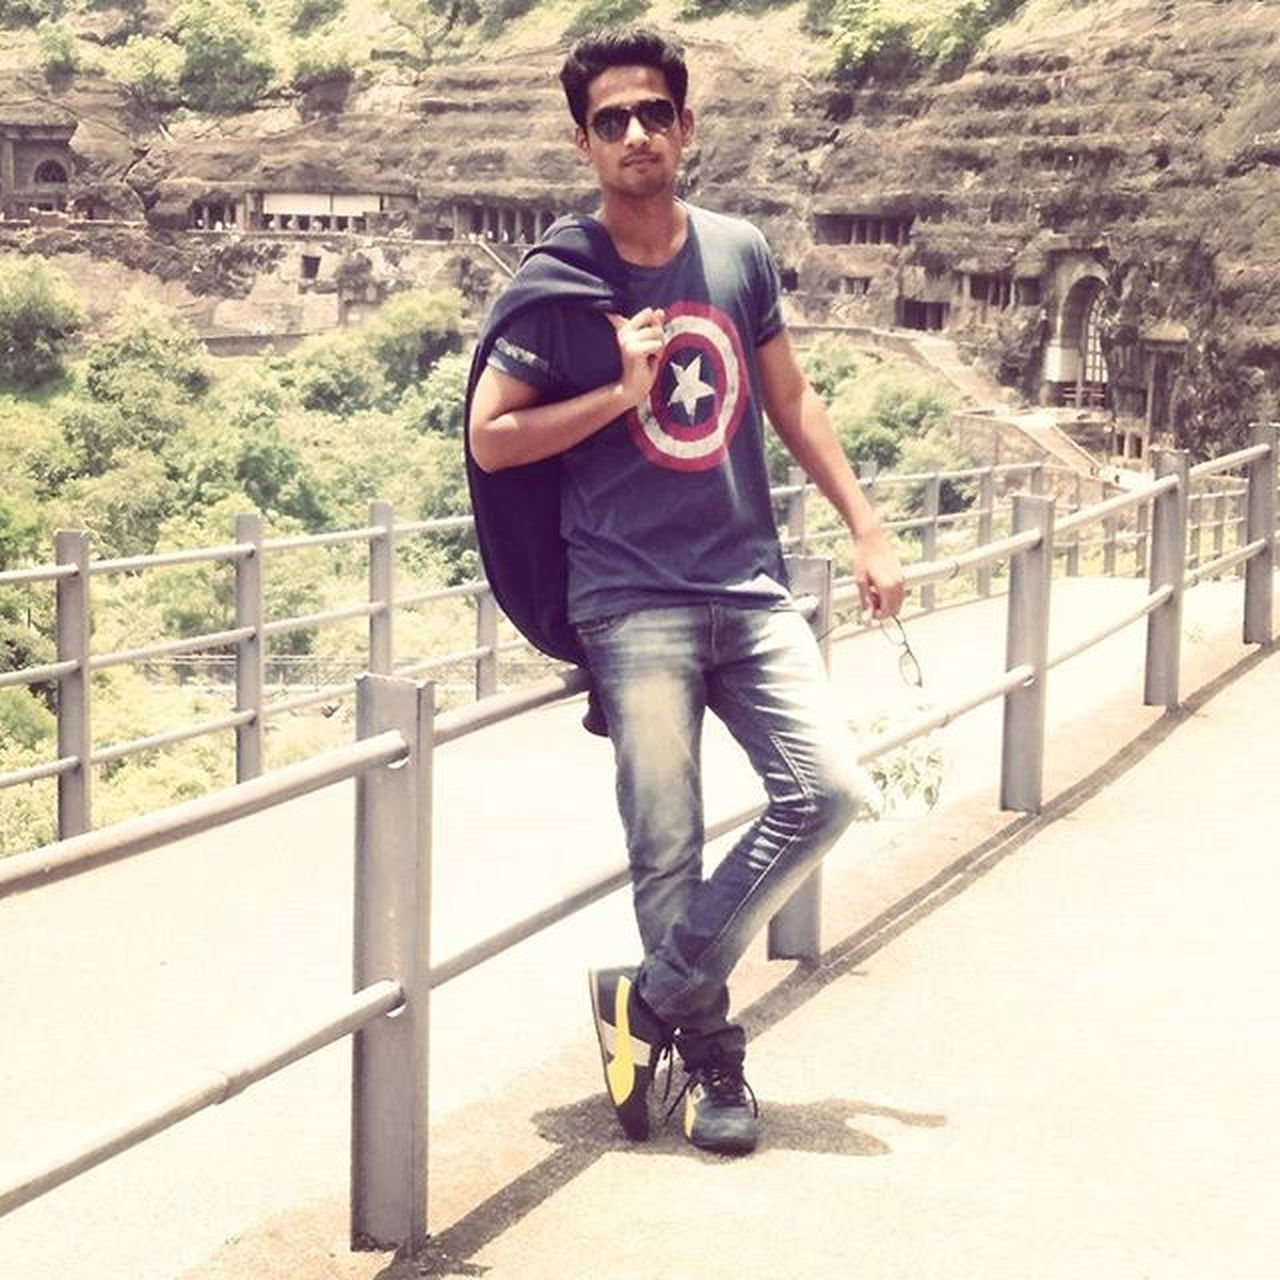 Traveler_diaries Ajantacaves Dusty_look AwesomeDay Roadtrip